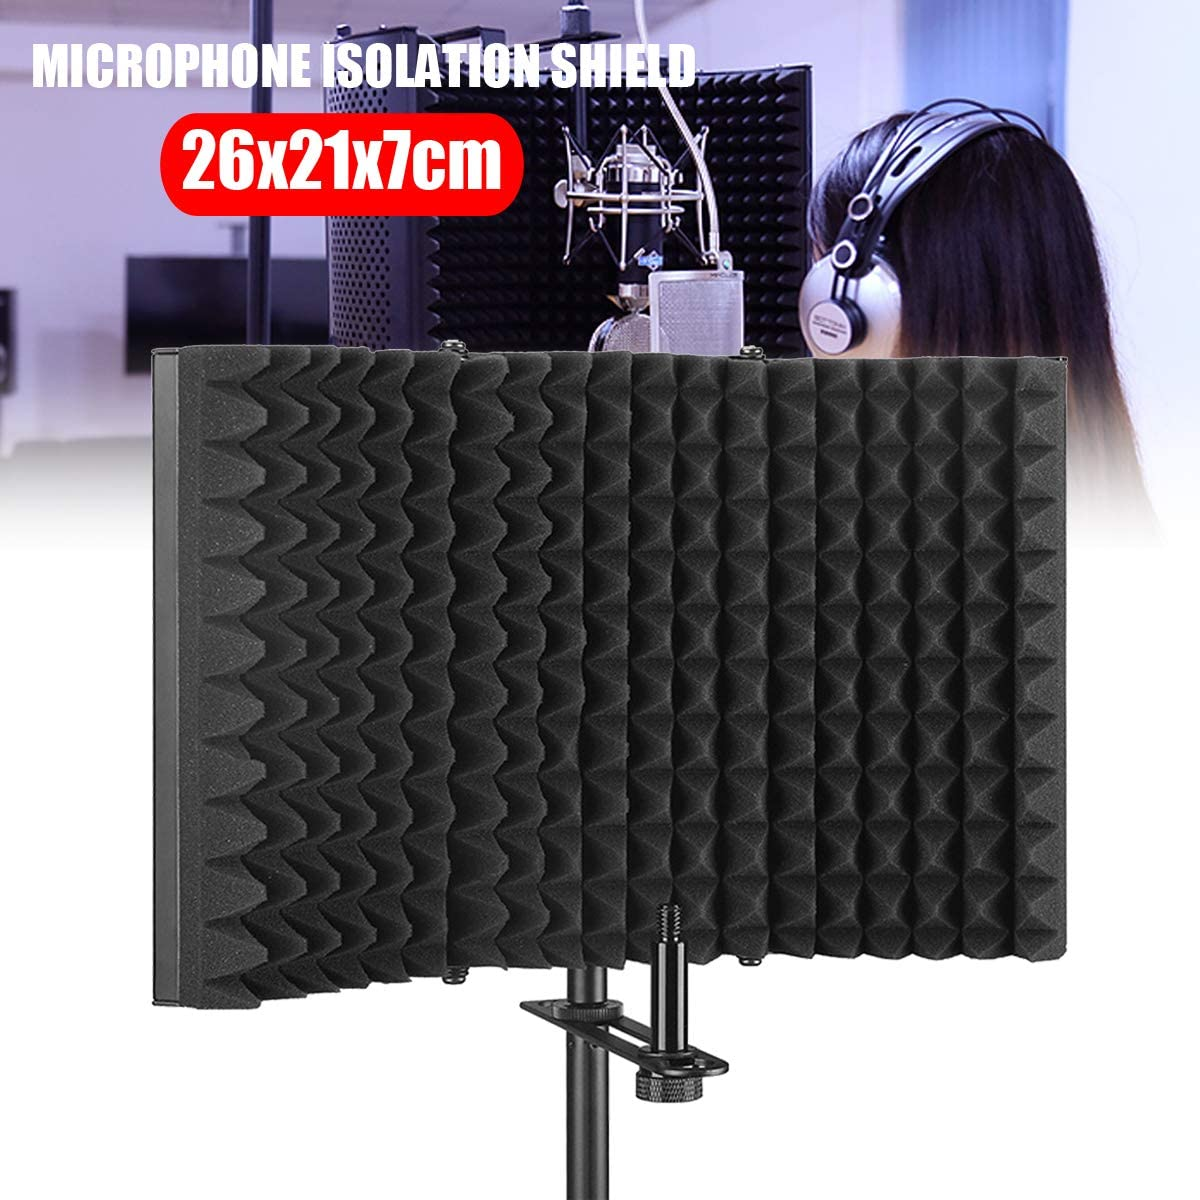 Microphone Isolation Shield, Pop Filter, Foldable Adjustable Durable Studio Recording Microphone Isolator Panel